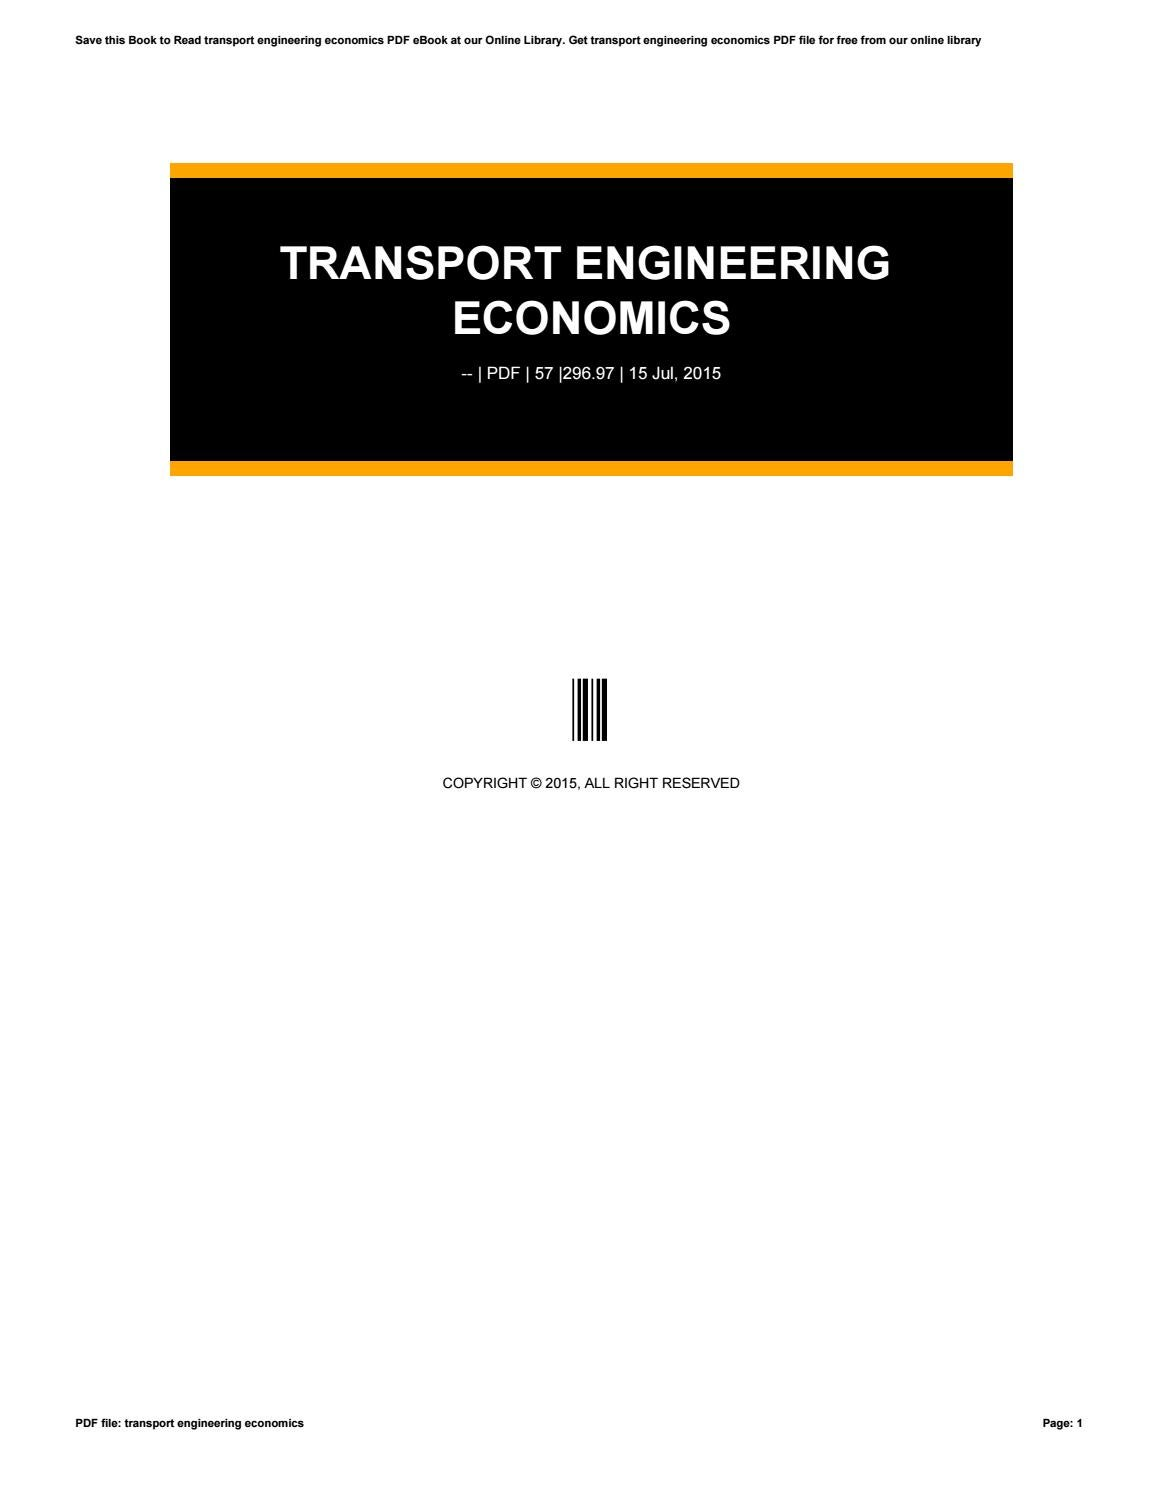 Transport engineering economics by laoho66 issuu fandeluxe Image collections